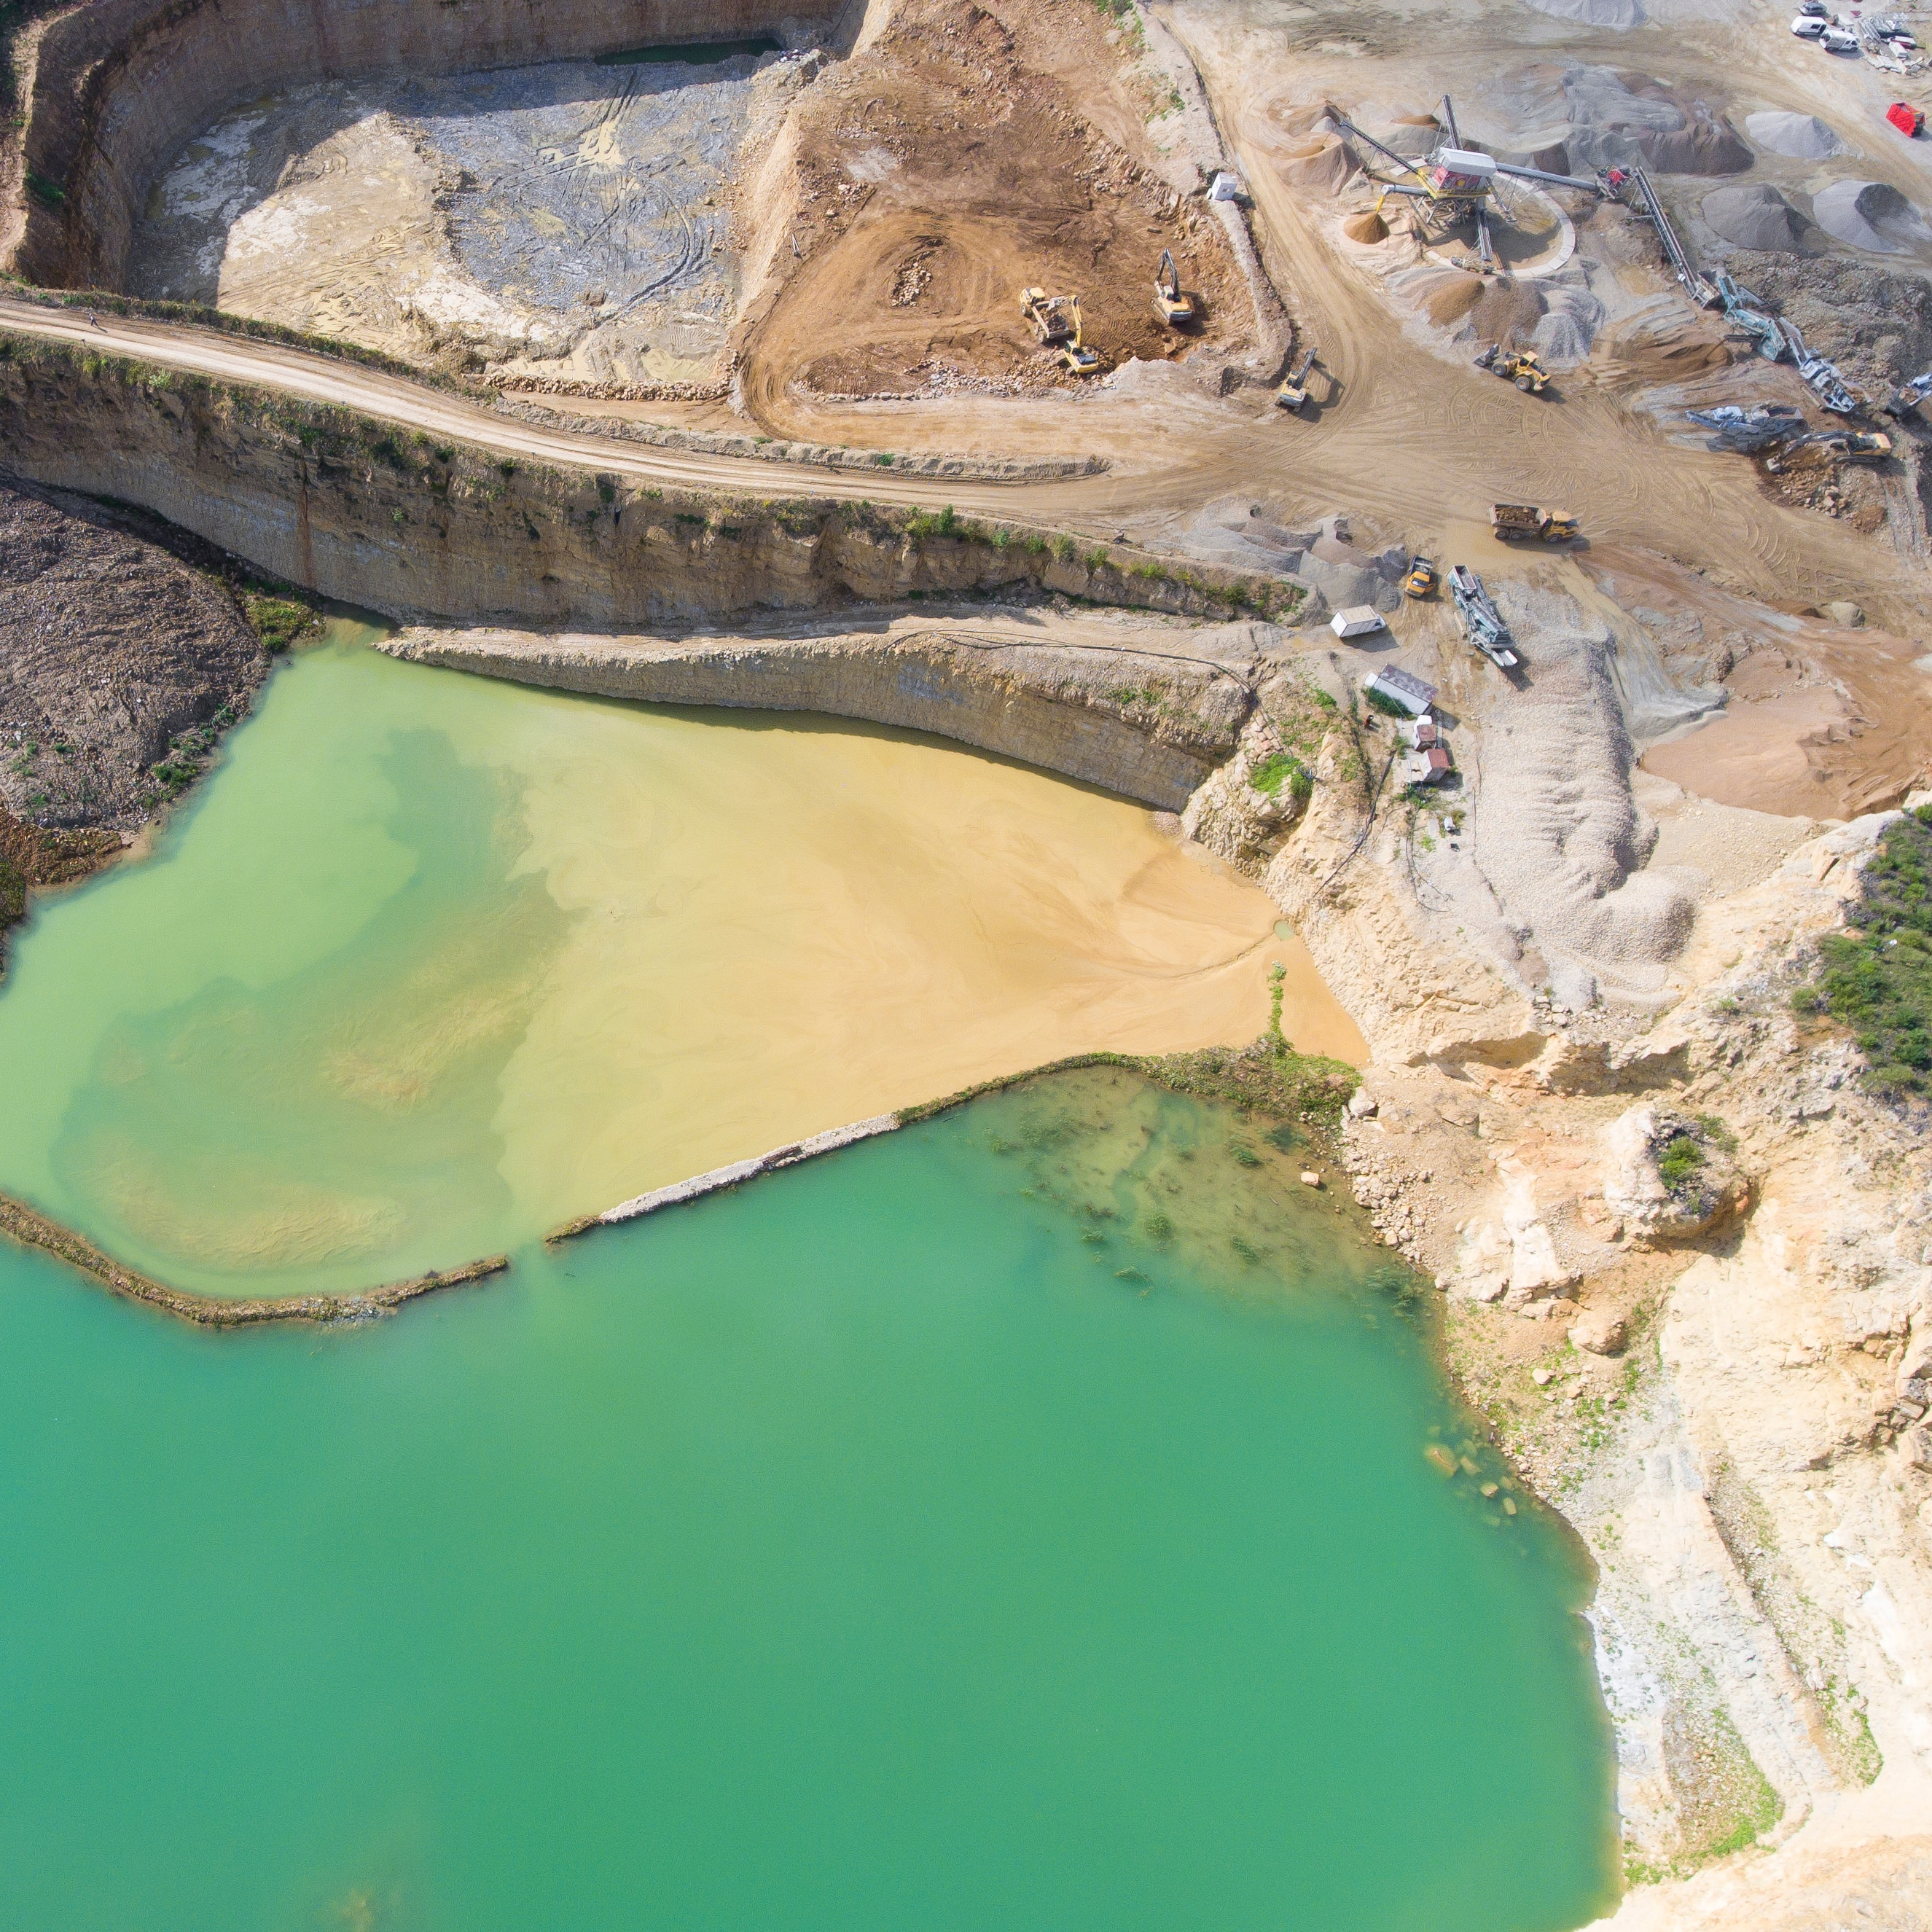 gold mine pollution commodity